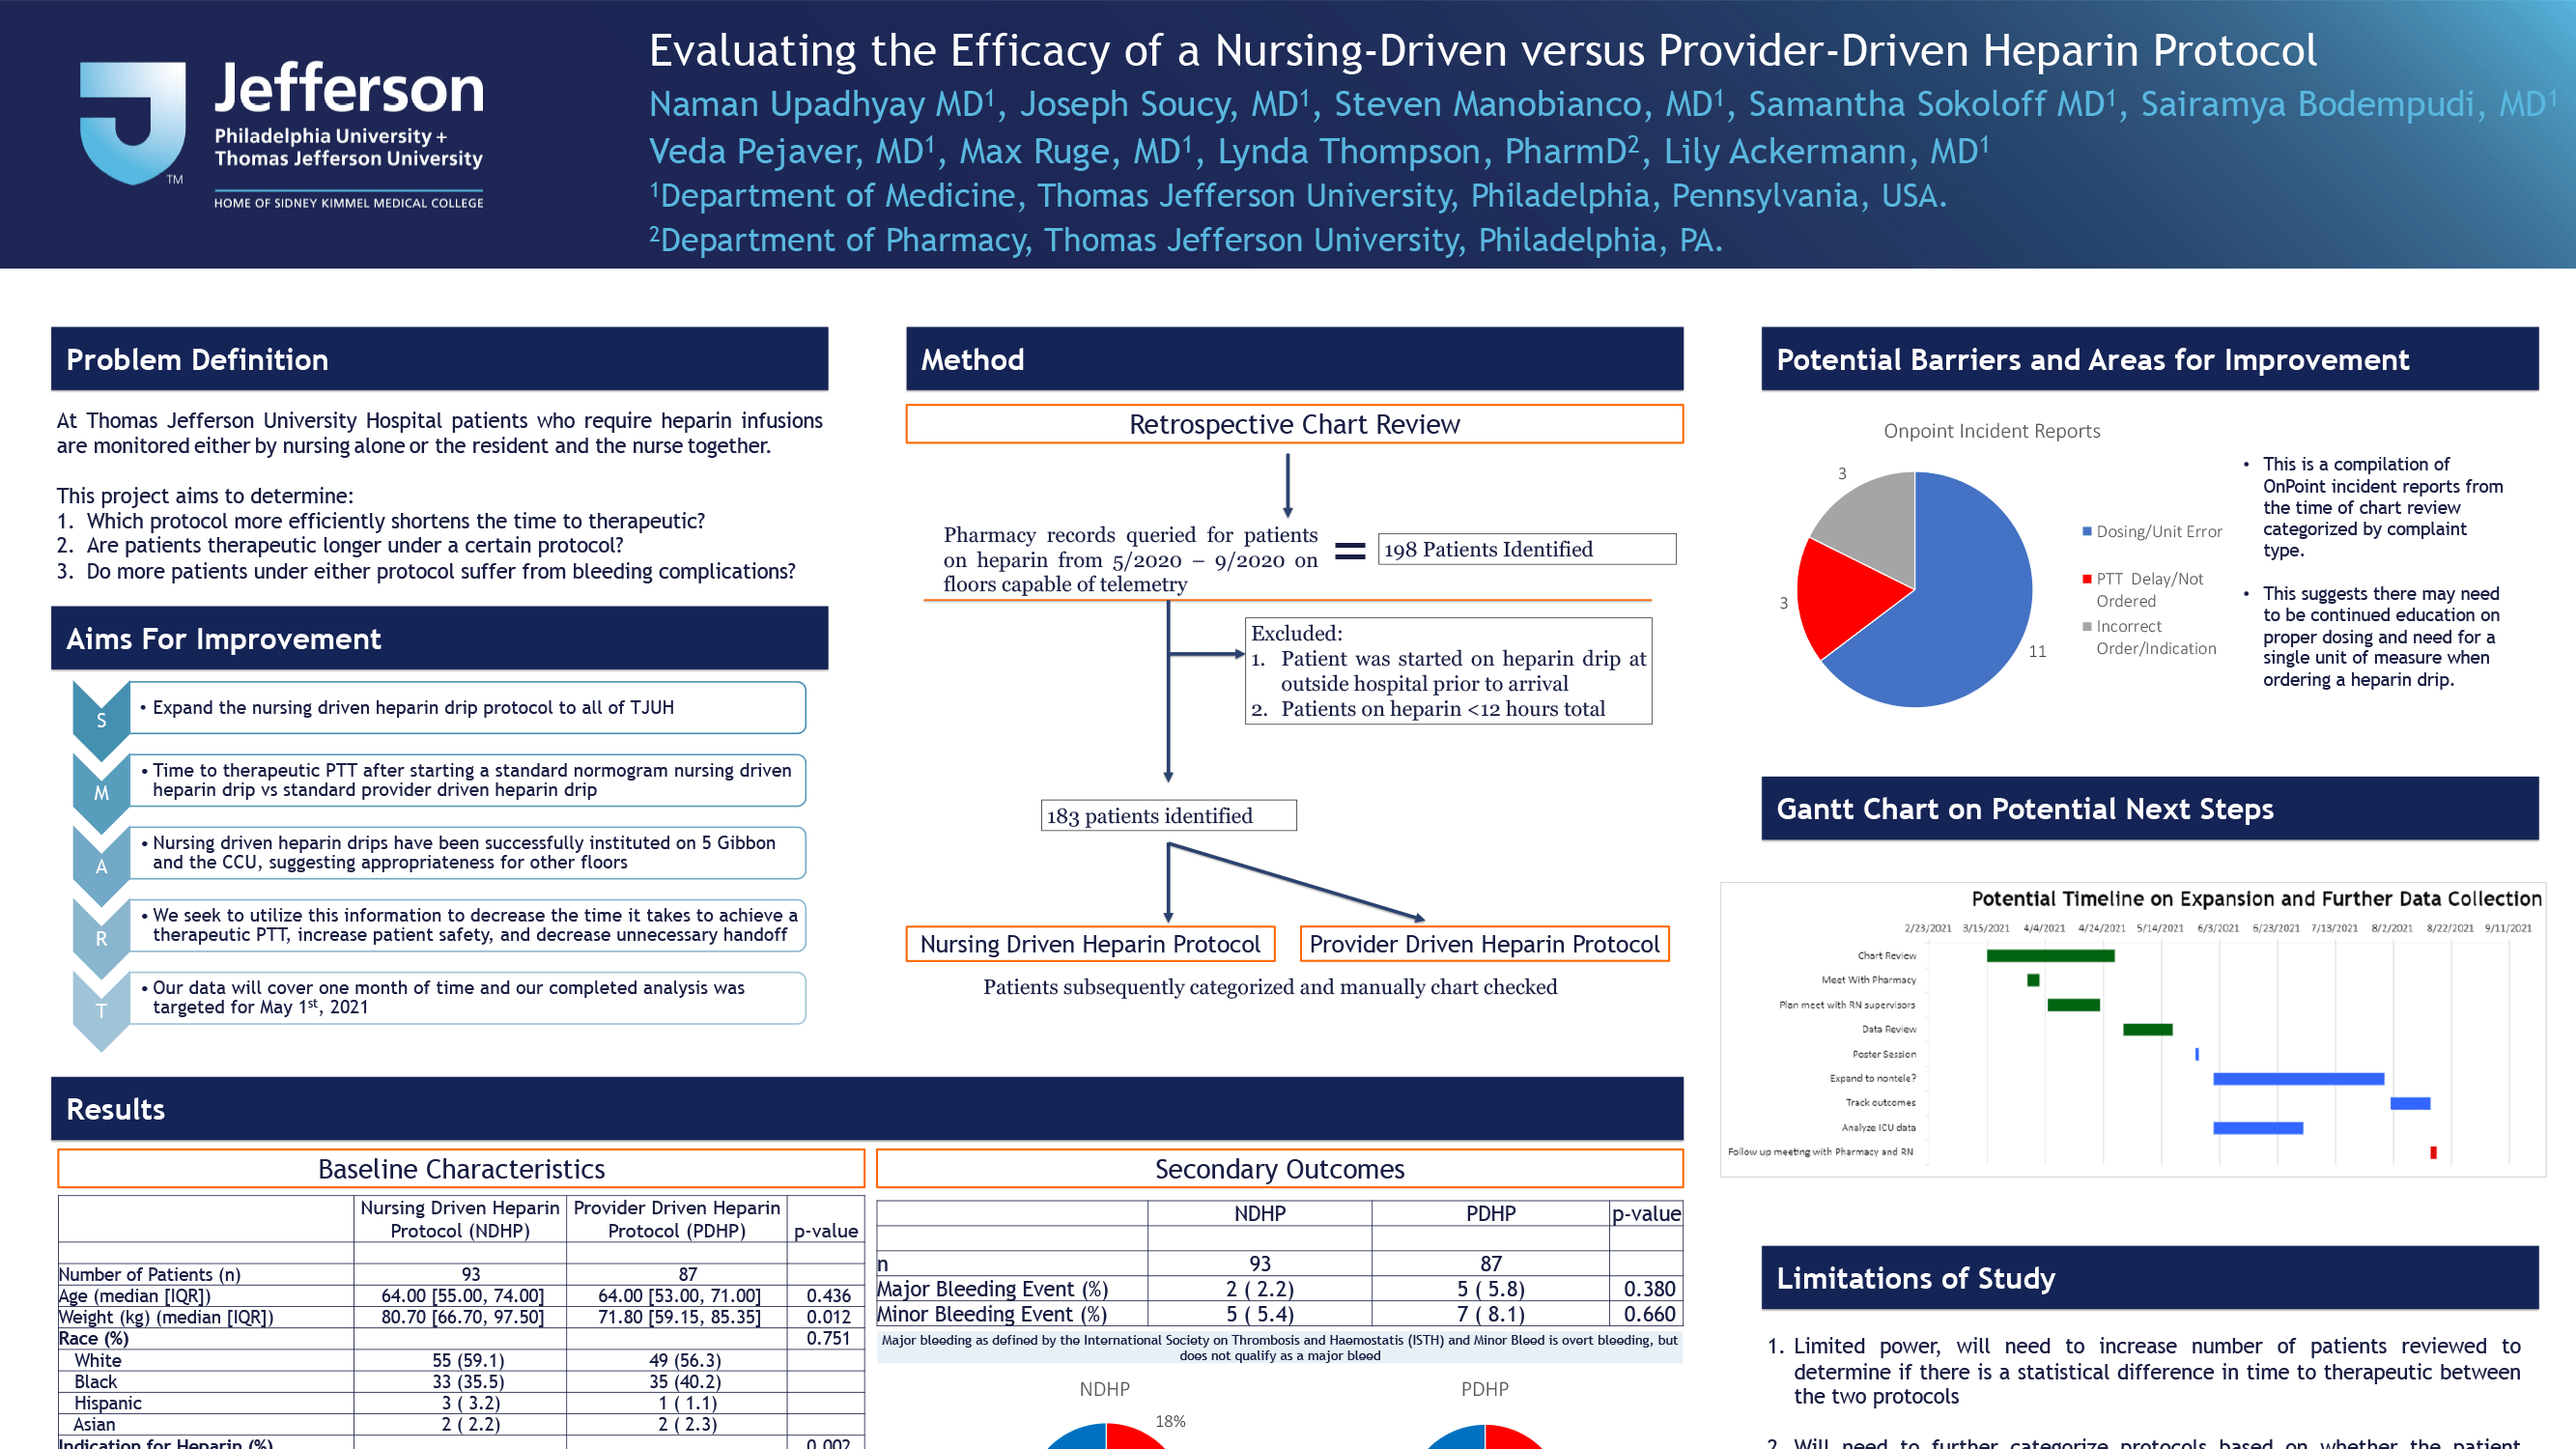 Naman Upadhyay - PAS-37-Evaluating-the-Efficacy-of-a-Nursing-Driven-versus-Provider-Driven-Heparin-Protocol